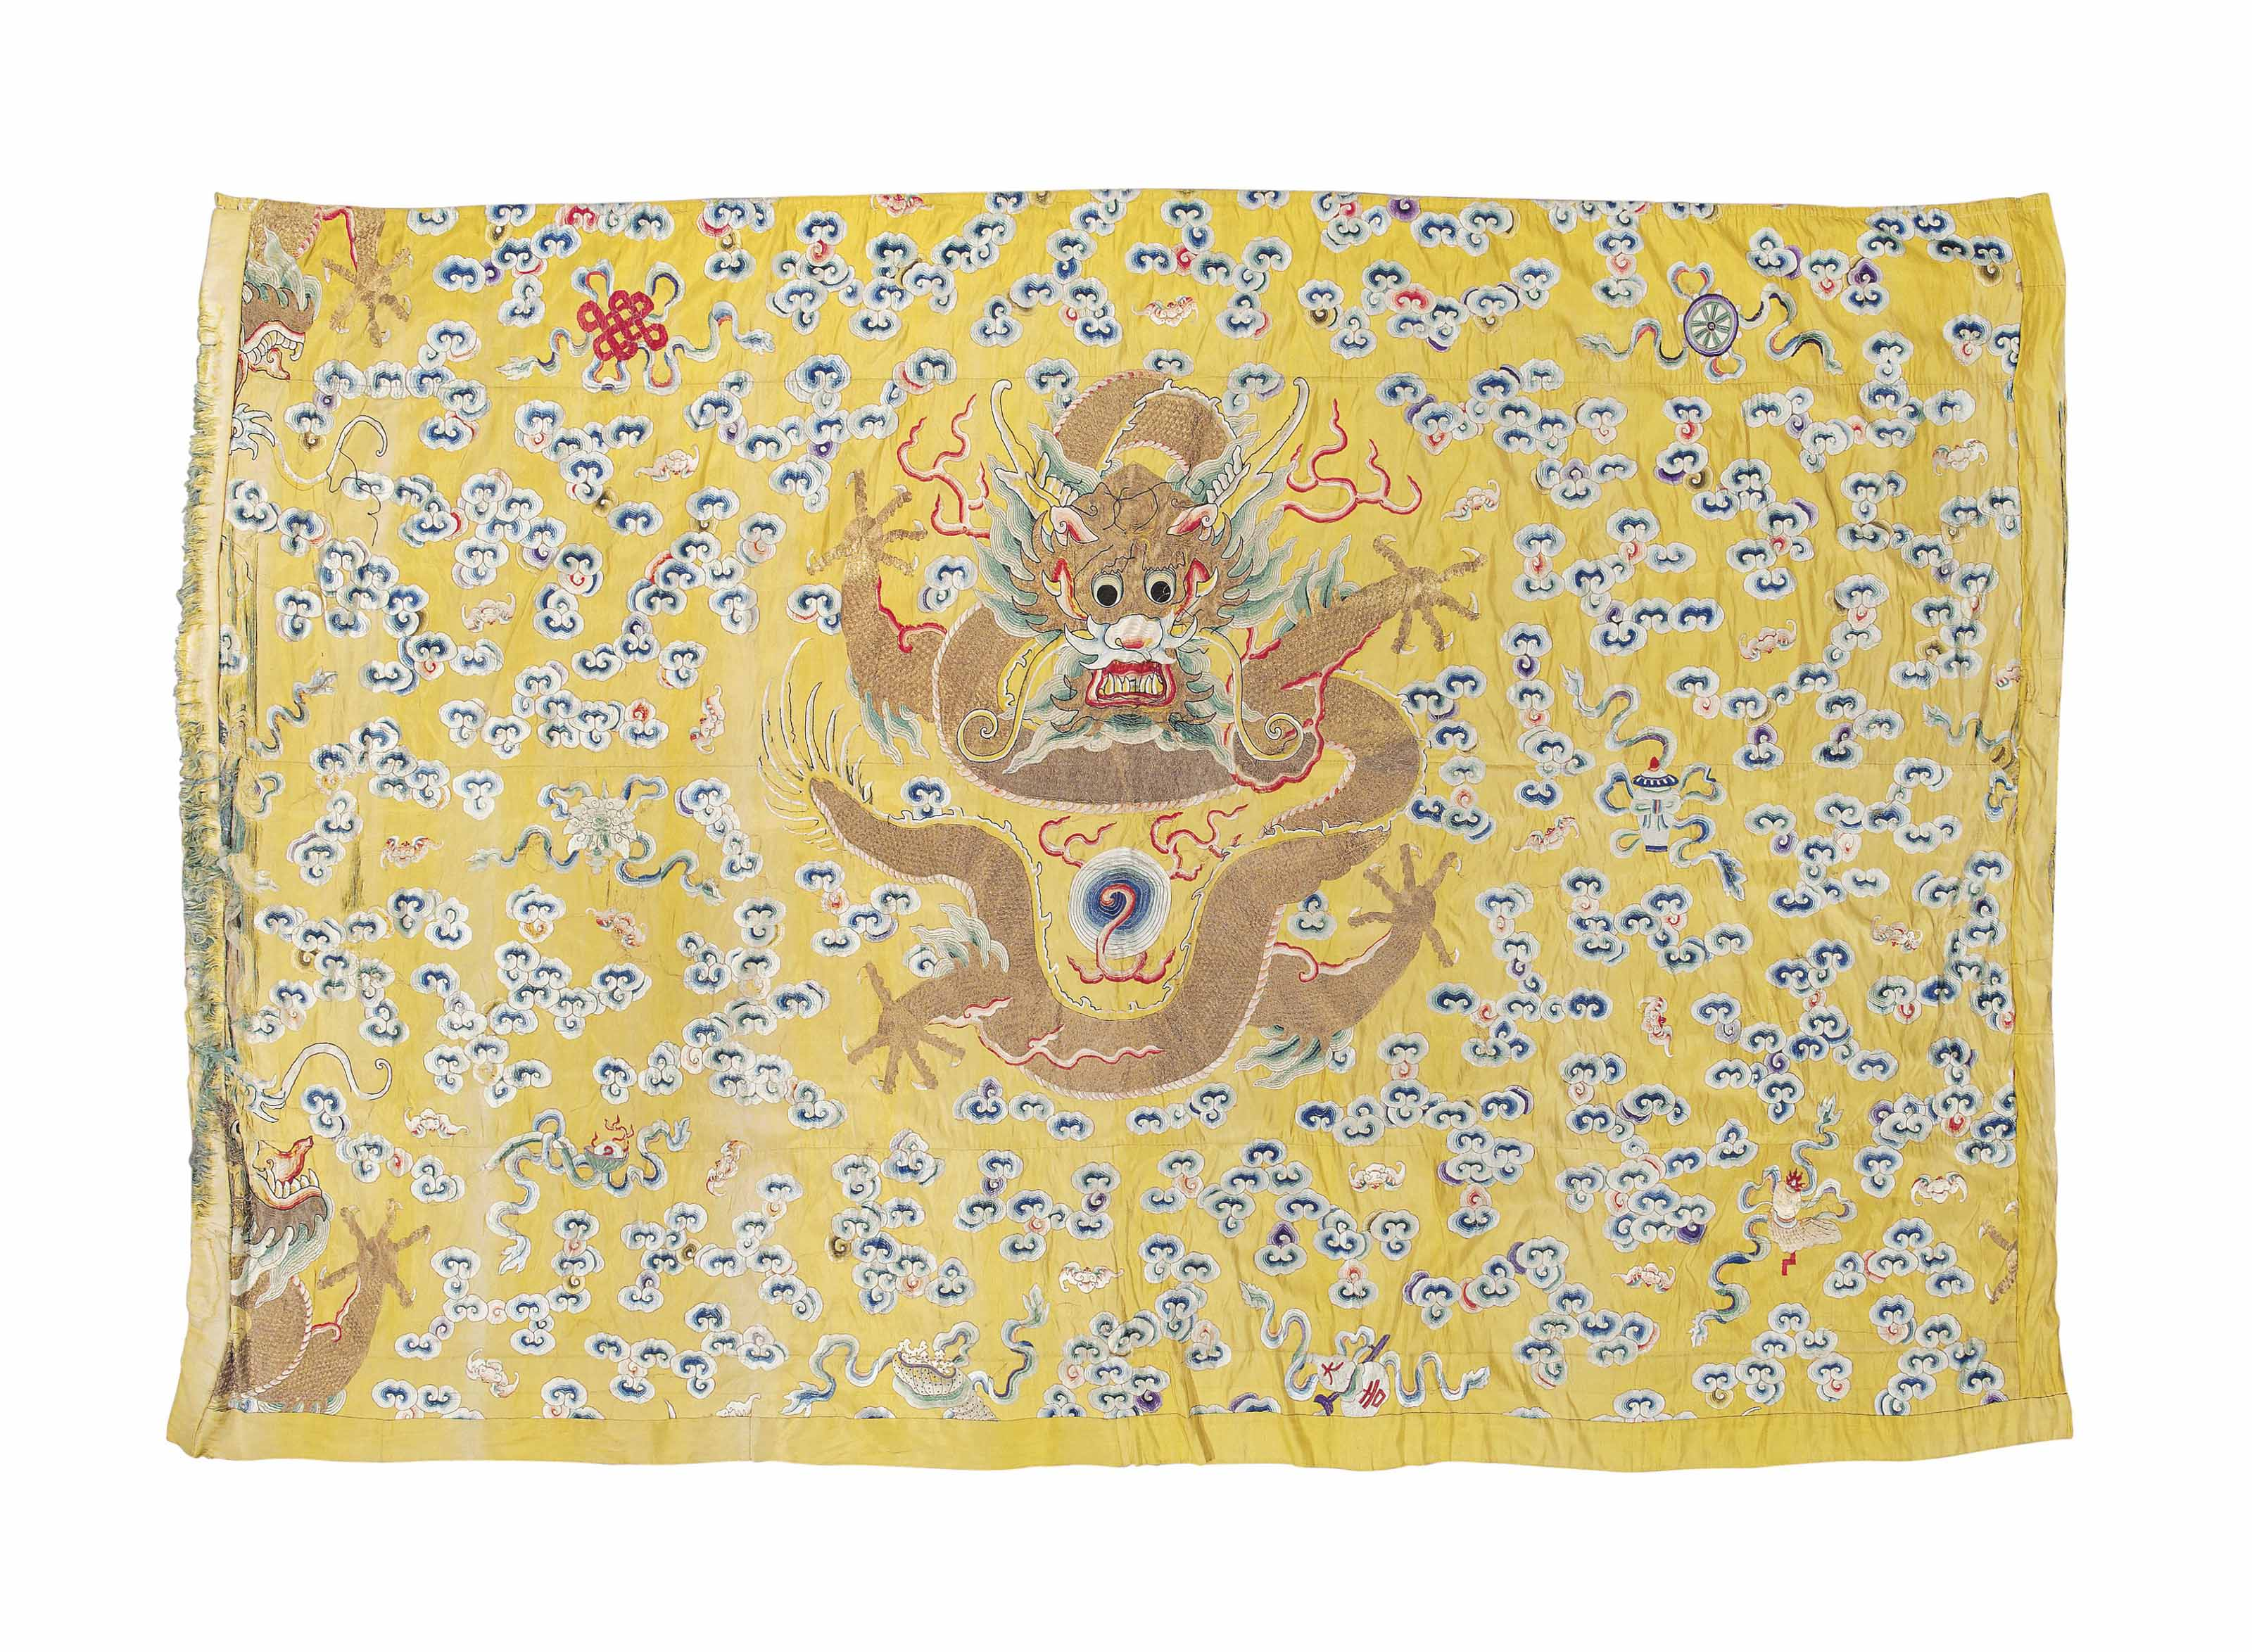 AN EMBROIDERED YELLOW-GROUND WALL HANGING